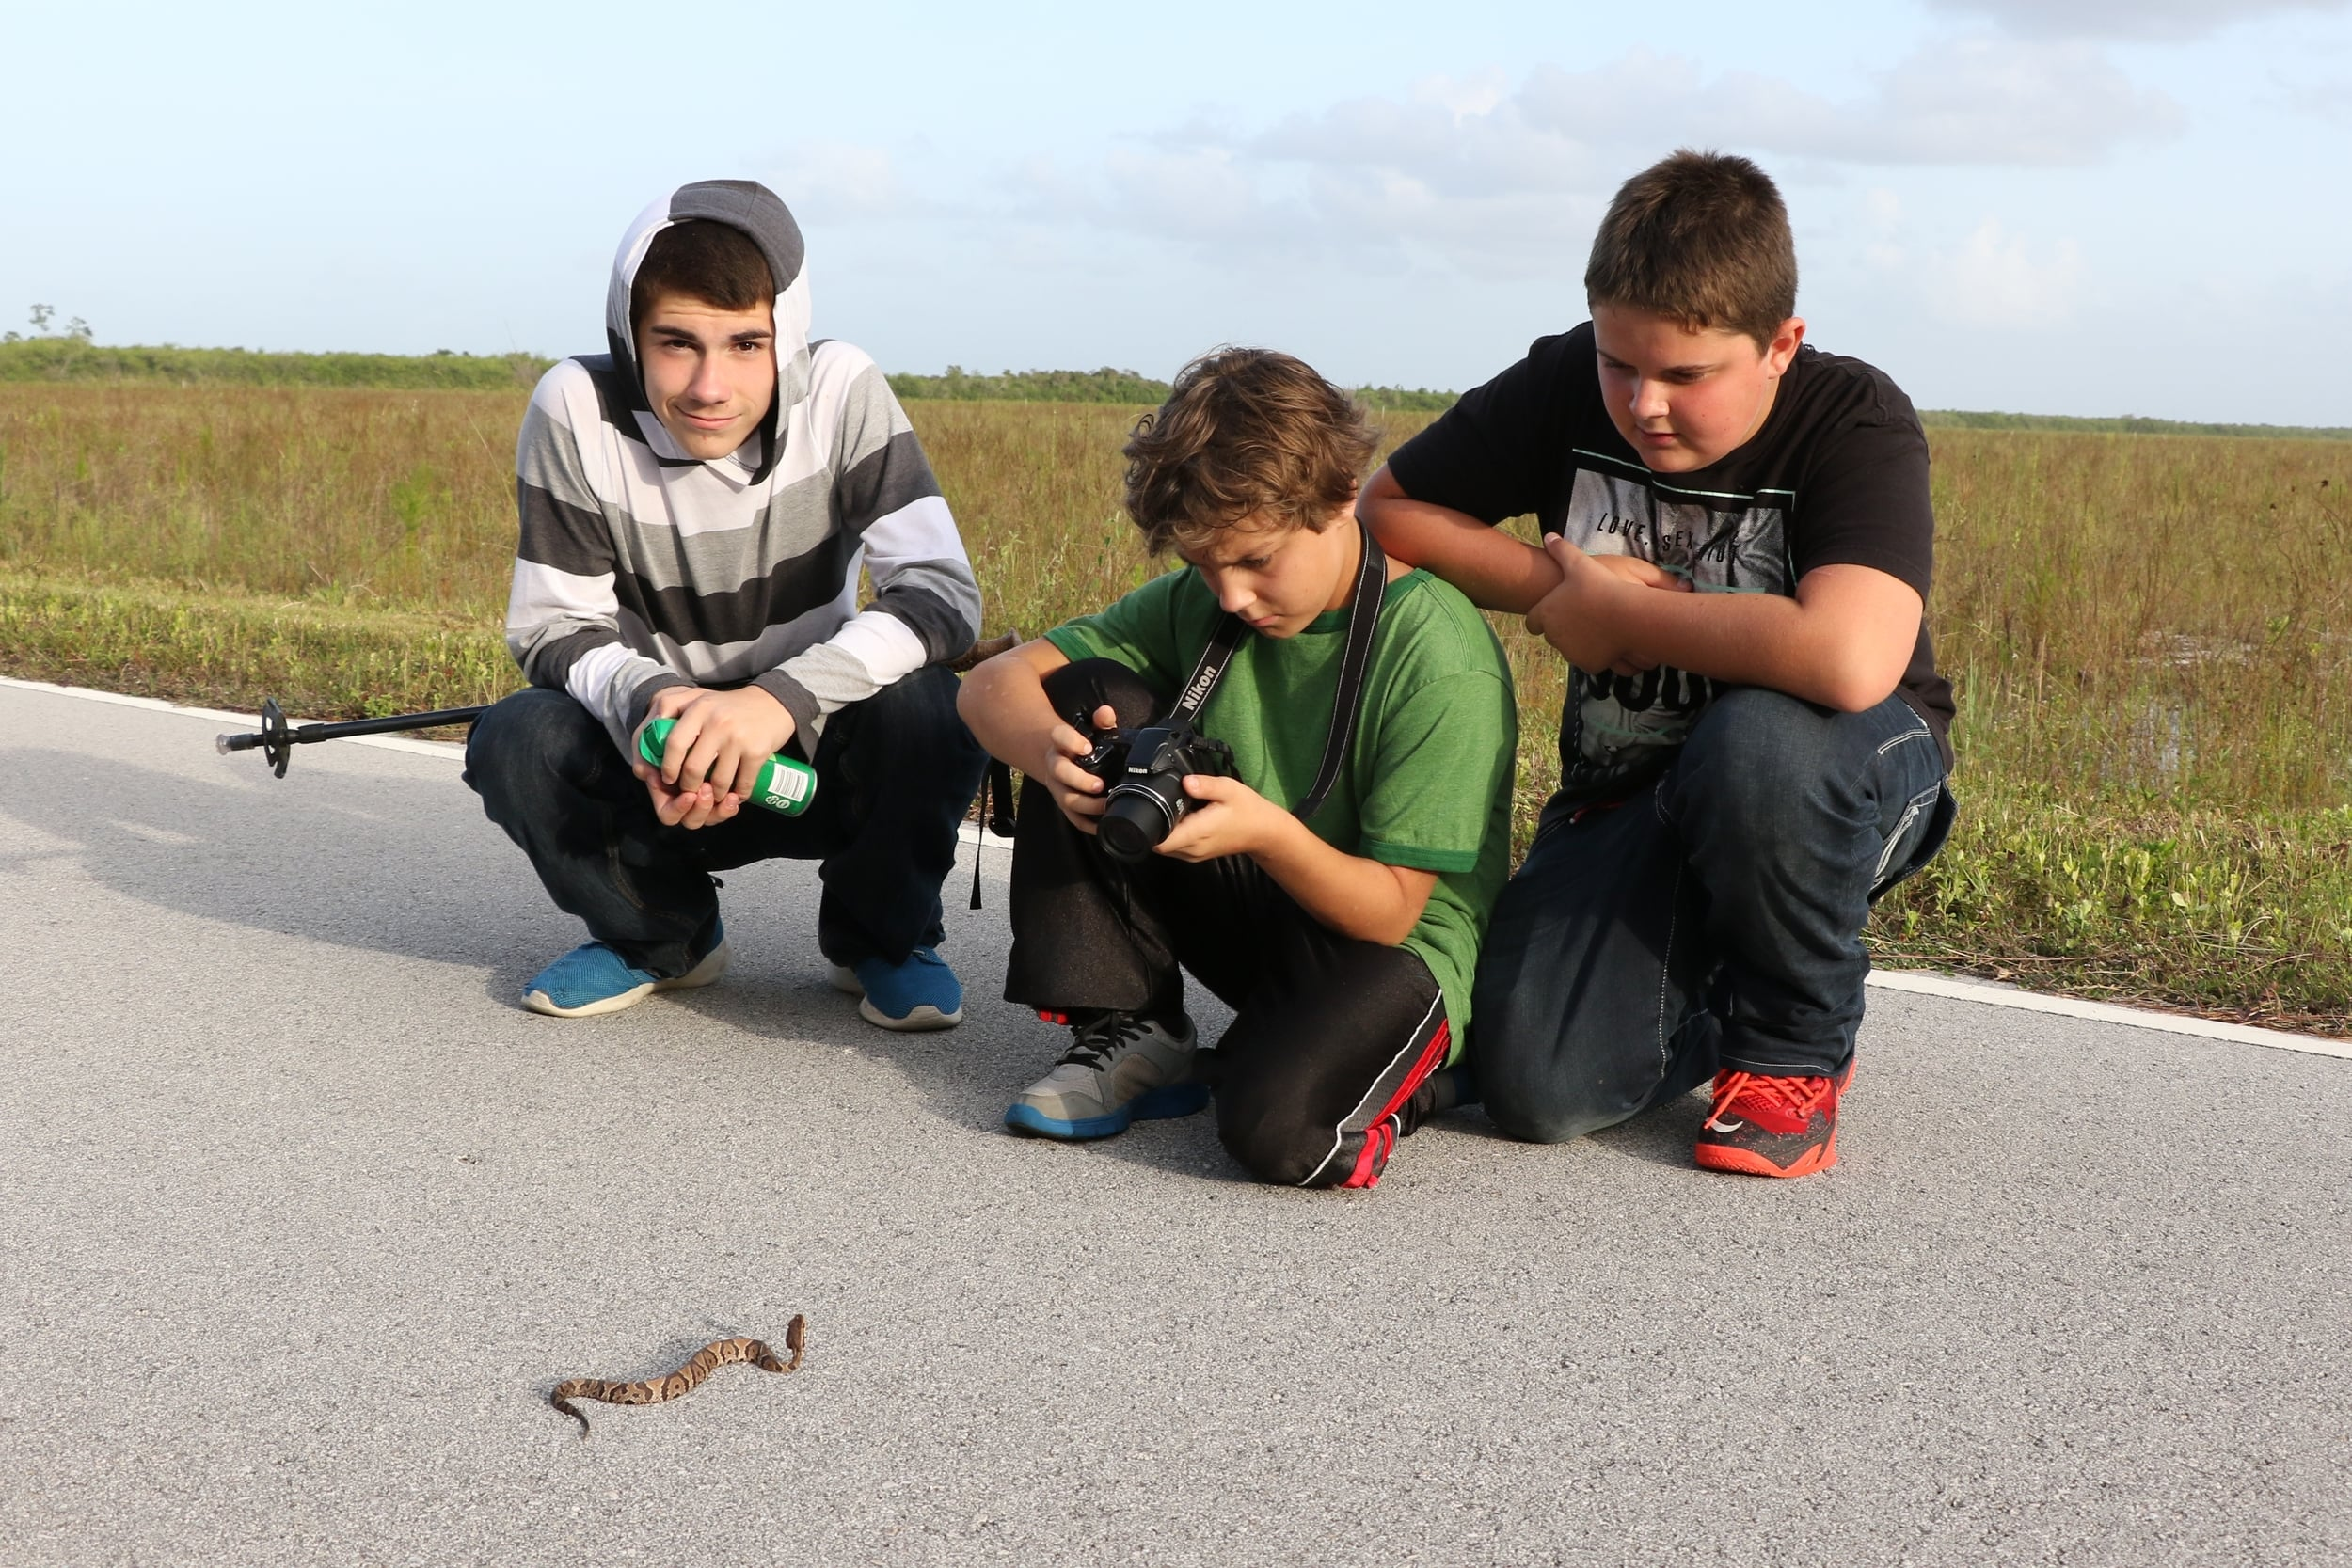 Florida Cottonmouth - This young snake was moved off the road. As you can see, they are every bit as dangerous and aggressive as most people think (sarcasm).